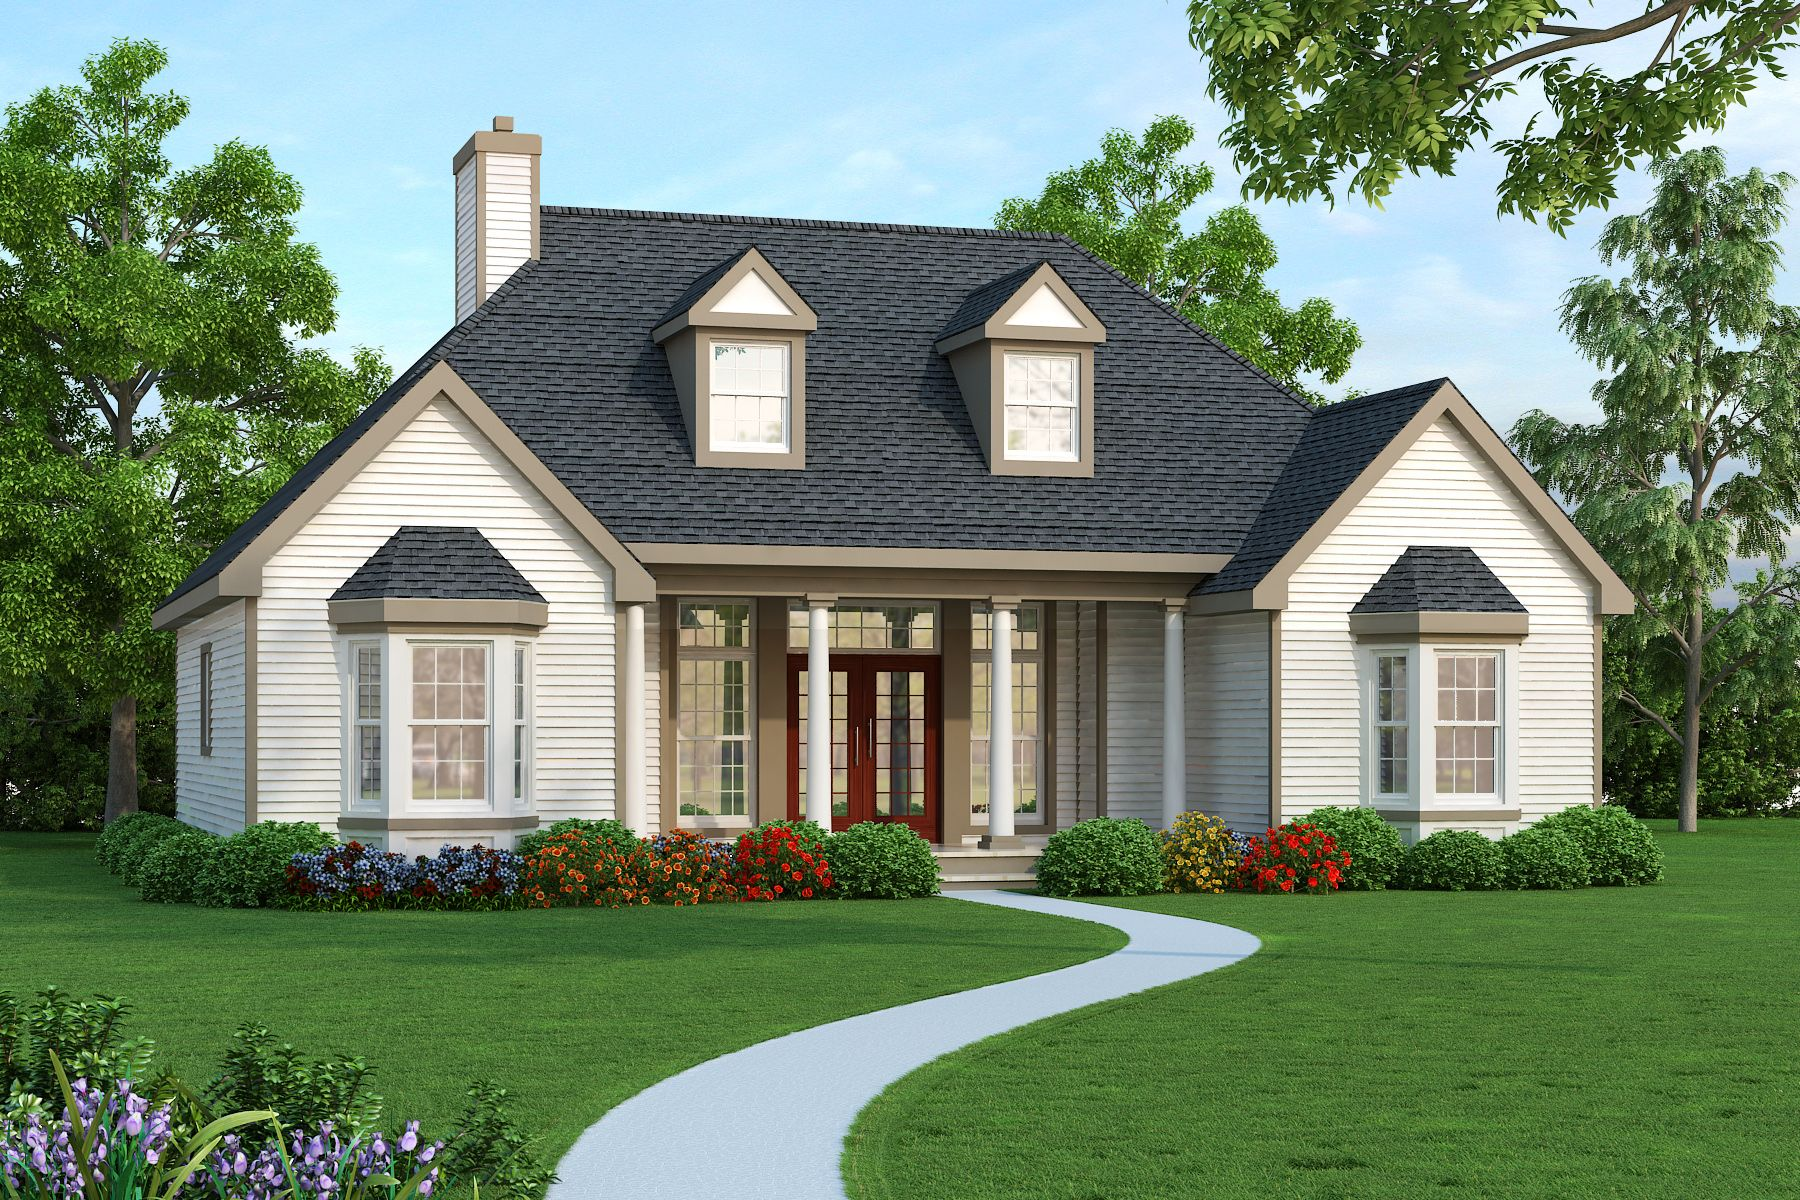 This new ranch house plan offers plenty of living space for Attached garage plans with bonus room